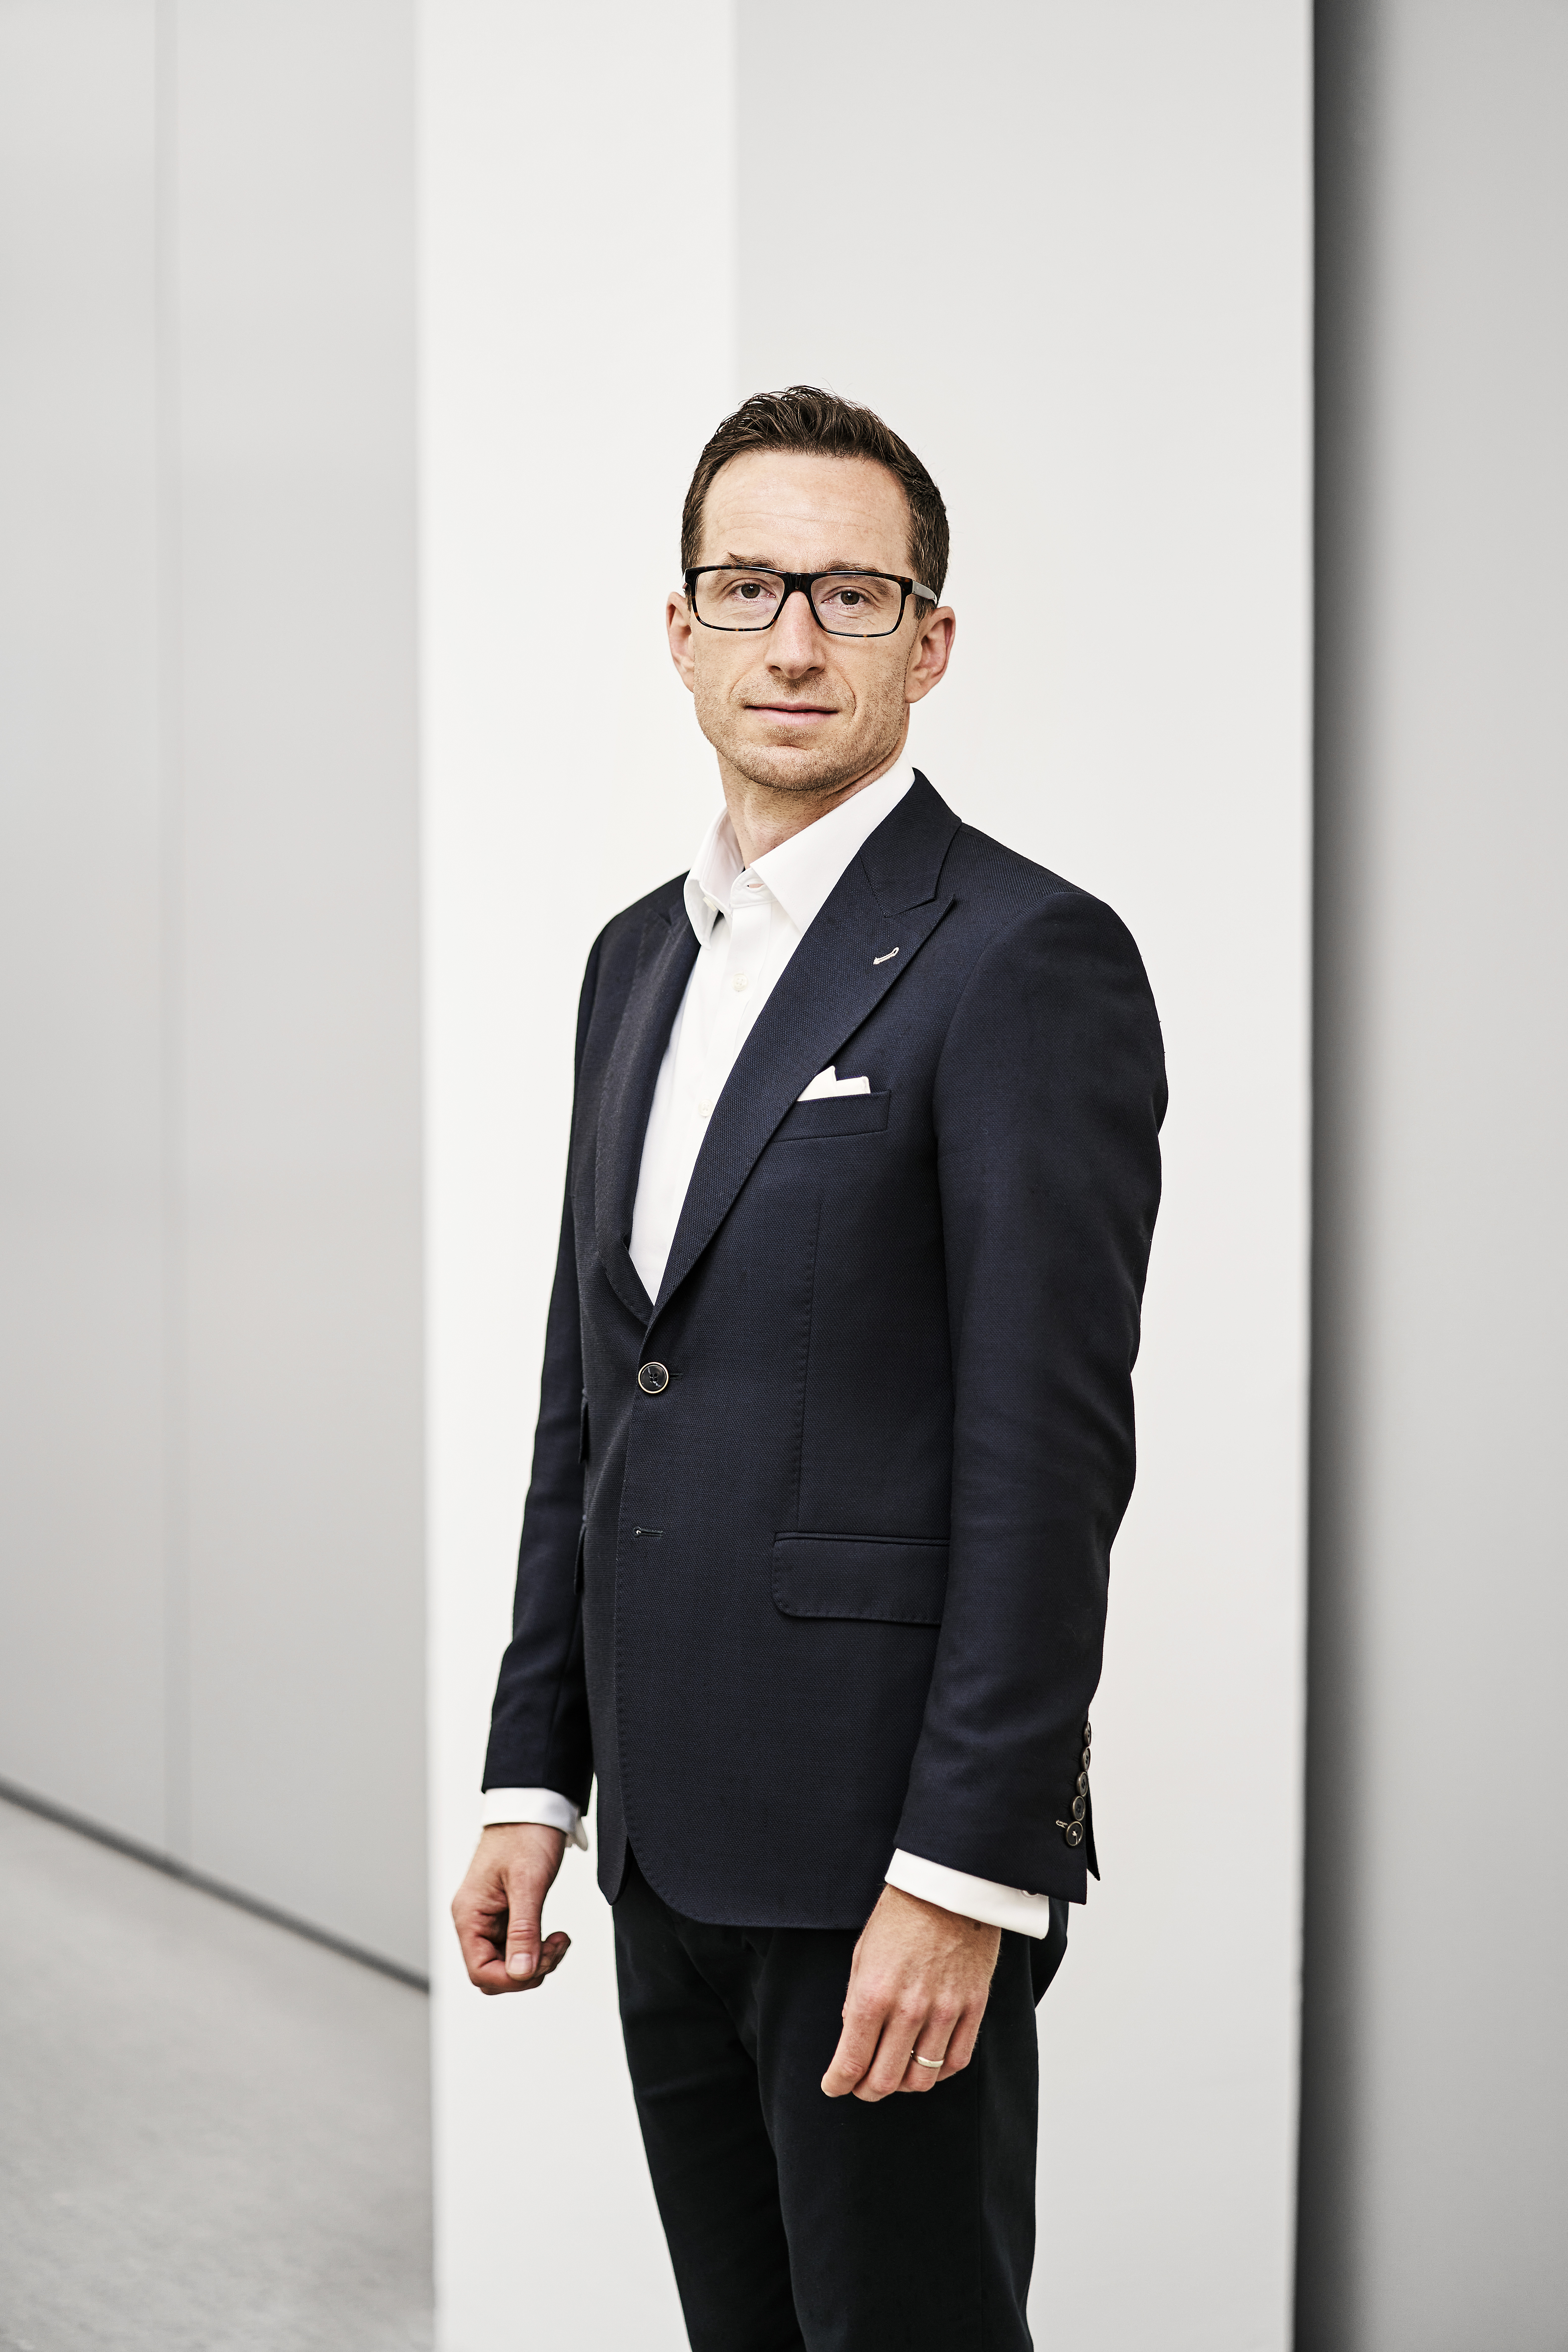 Change of leadership at the SKODA division of Volkswagen Group Rus - Image 2